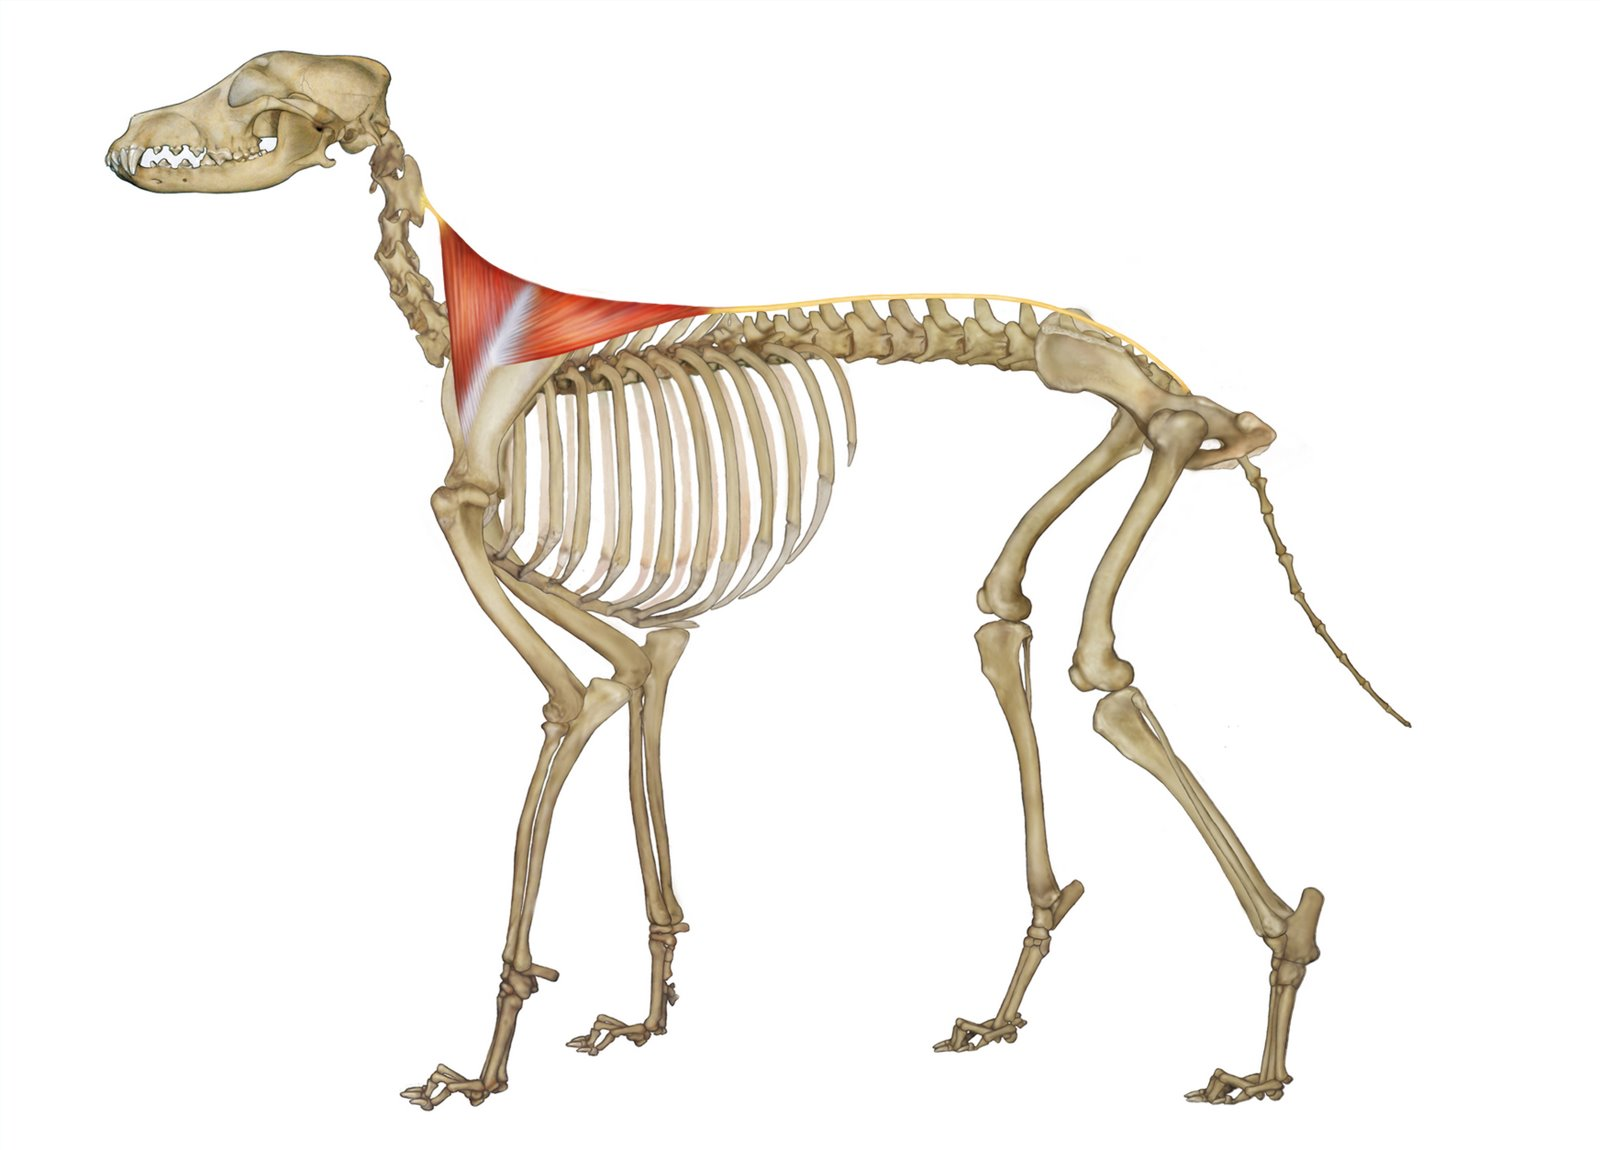 Dog Anatomy Illustrations | Luisa van Erven